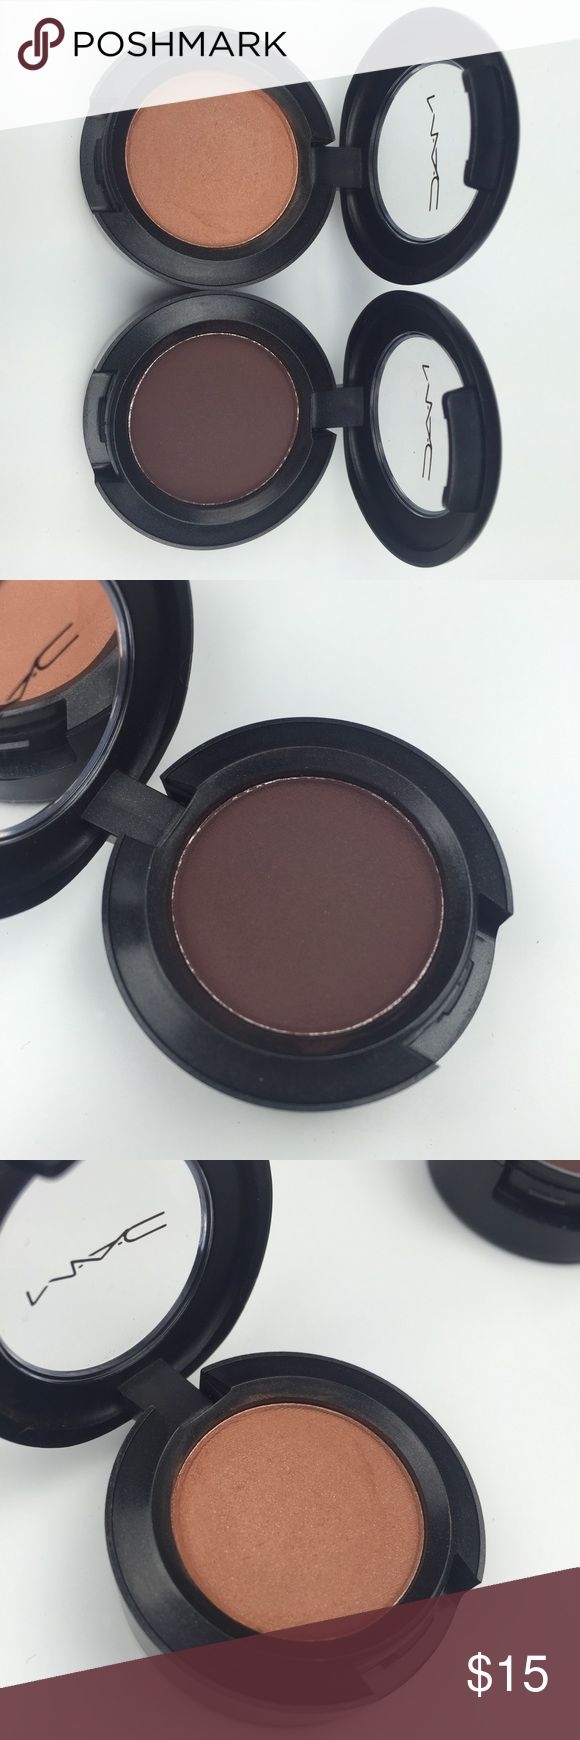 2pc MAC Eye Shadows 2 GENTLY USED MAC eyeshadow in the colors Texture (velvet) and Embark (matte). Original boxes not included. ALL USED MAKEUP IS SANITIZED BEFORE SHIPPED! MAC Cosmetics Makeup Eyeshadow